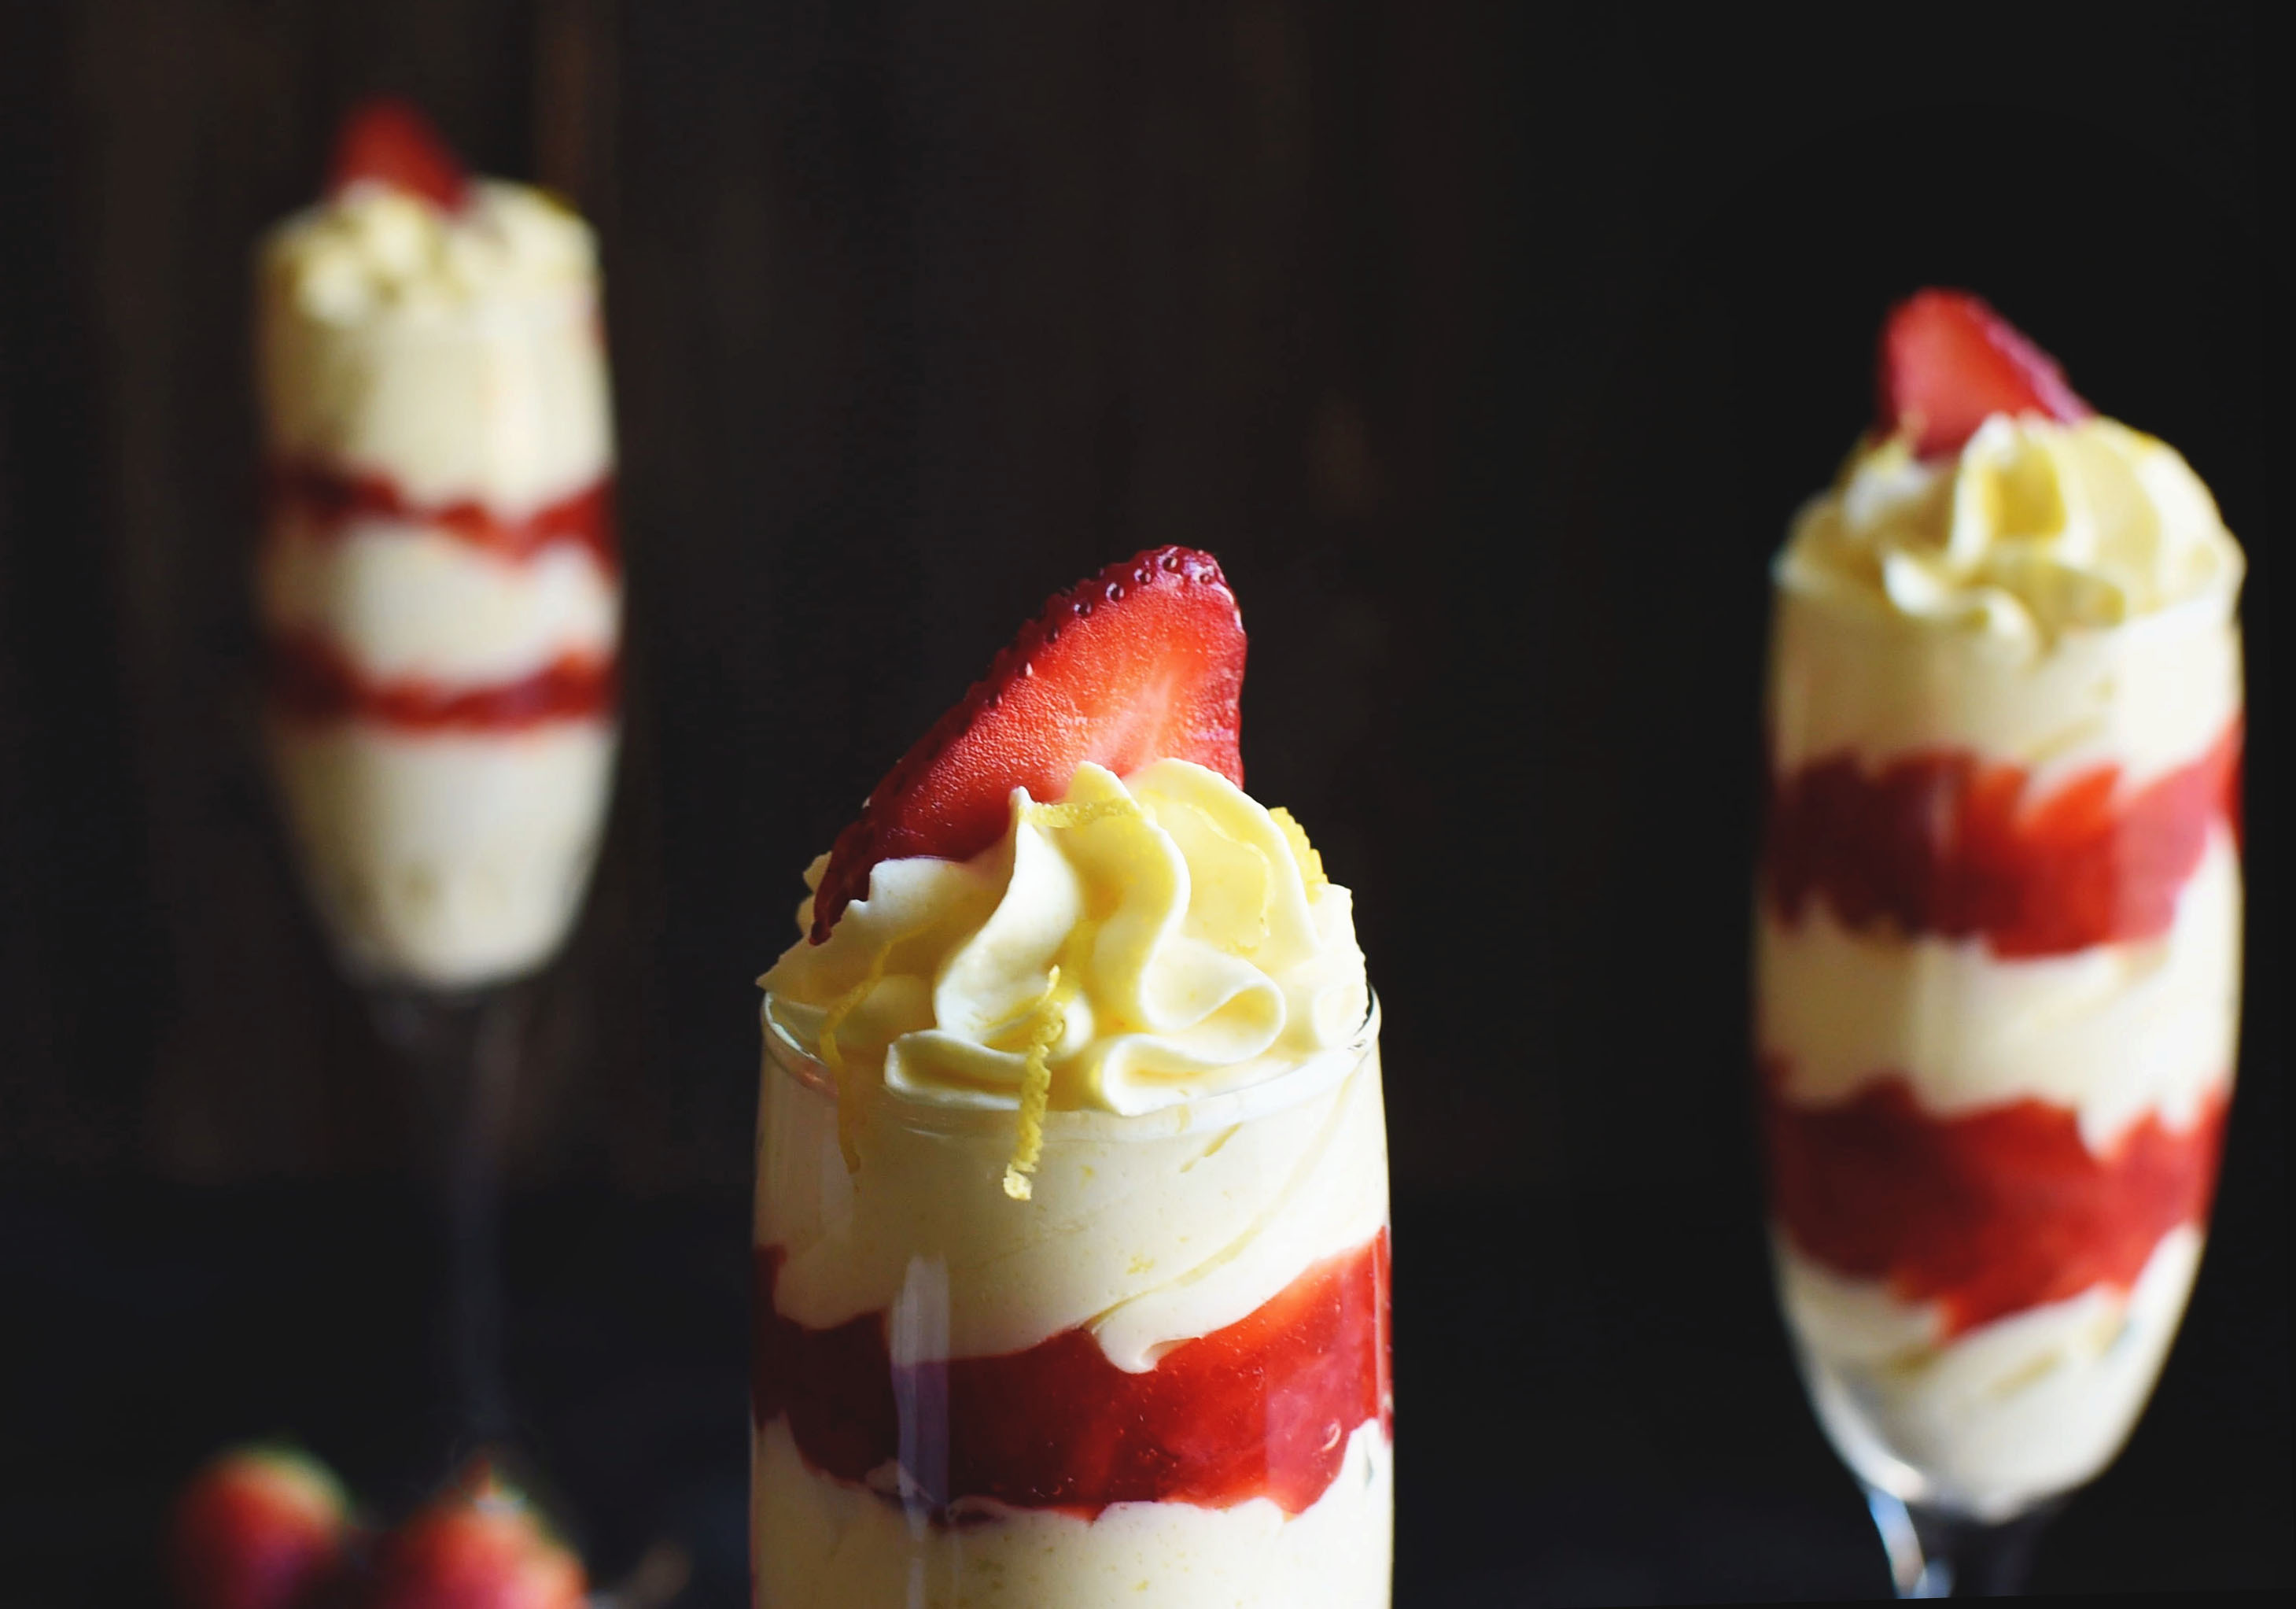 Low-Carb Lemon Mousse with Strawberries